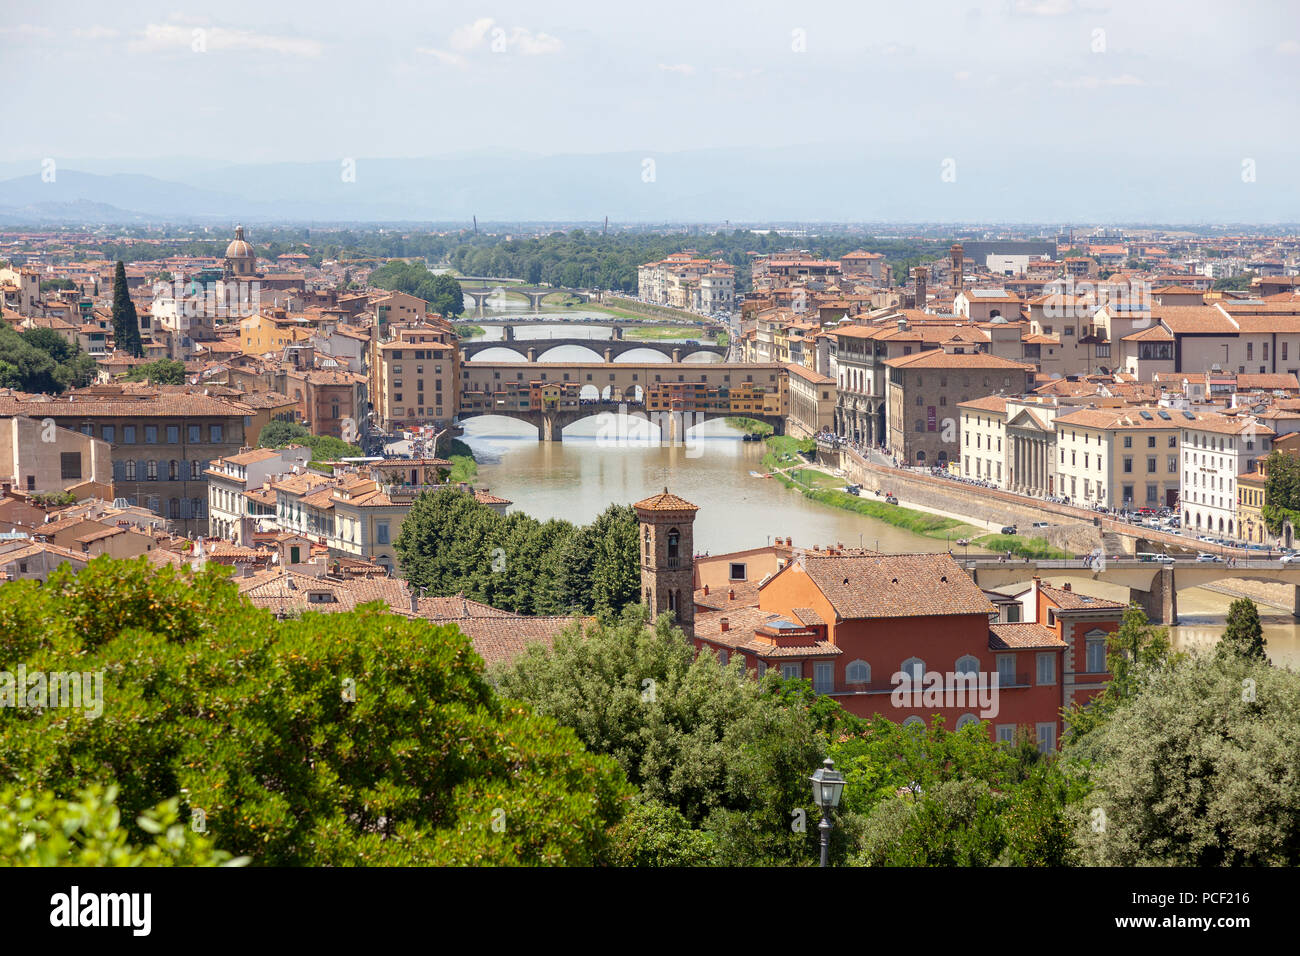 Seen from the Eastern vantage point of the Michelangelo Square: the bridges of Florence, mainly the iconic Ponte Vecchio (Tuscany - Italy). - Stock Image